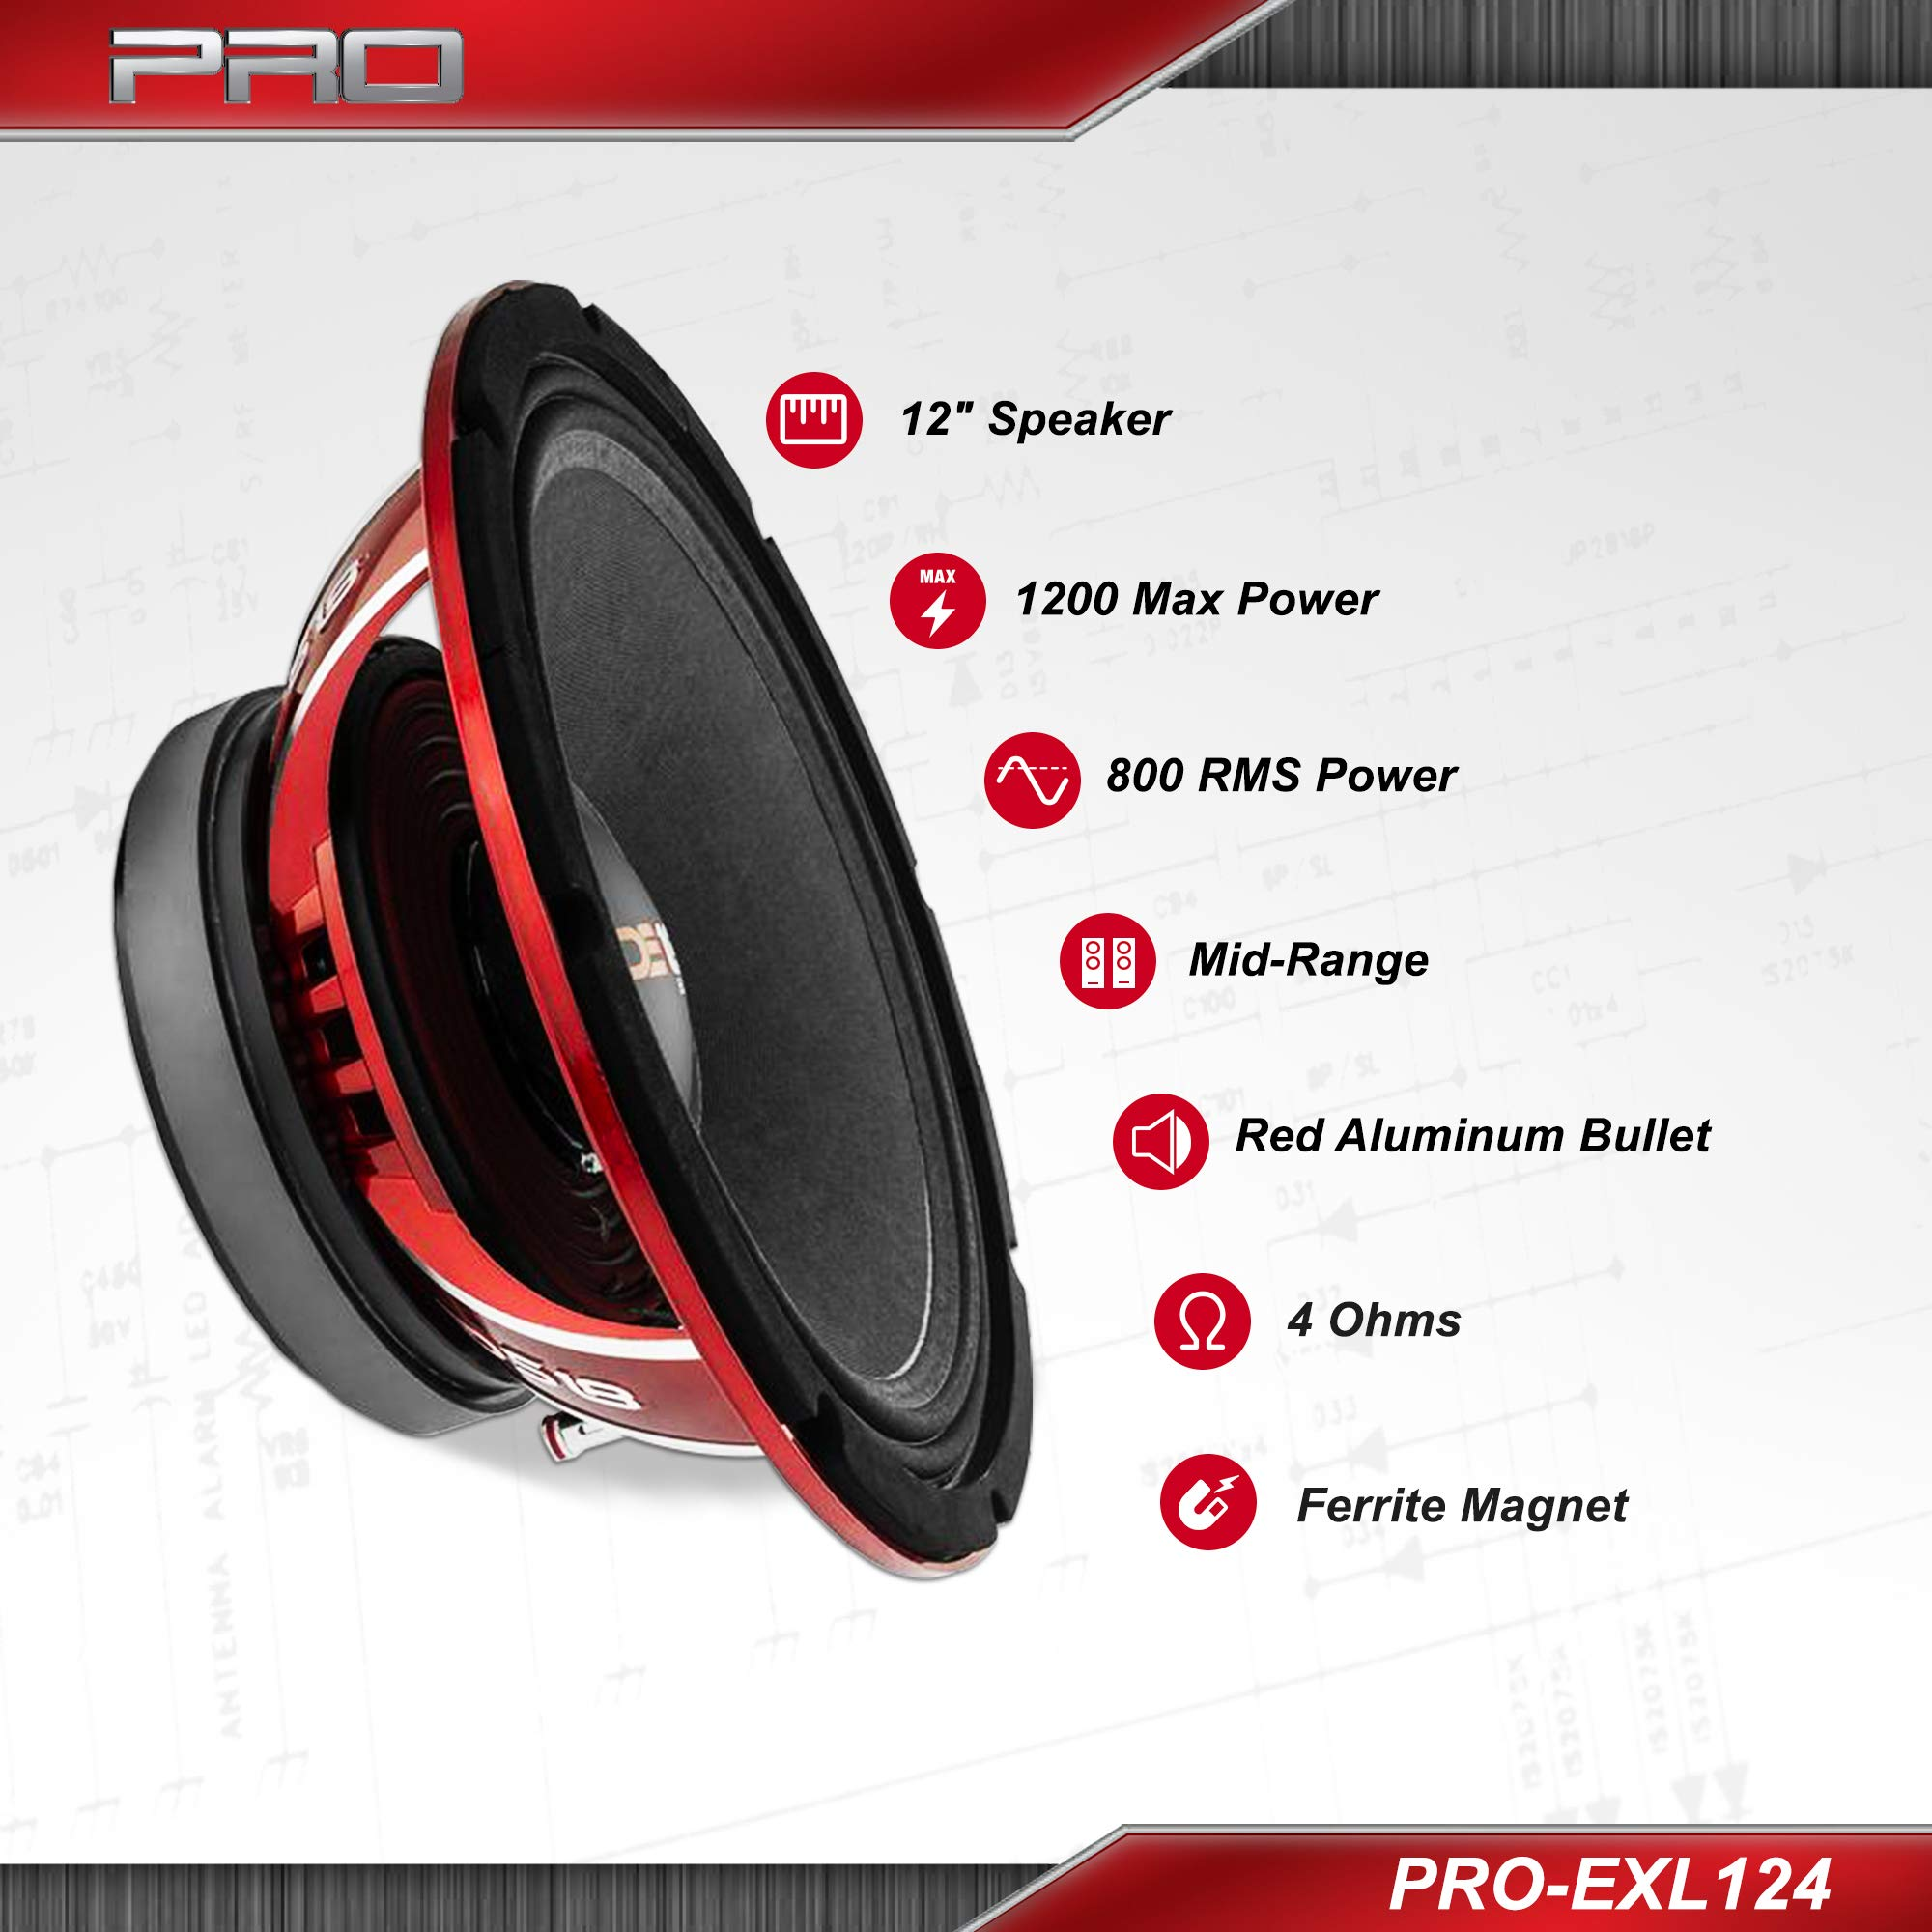 DS18 PRO-EXL124 Loudspeaker - 12'', Midrange, Red Aluminum Bullet, 1200W Max, 800W RMS, 4 Ohms, Ferrite Magnet - For the Peple Who Live and Breathe Car Audio (1 Speaker) by DS18 (Image #2)